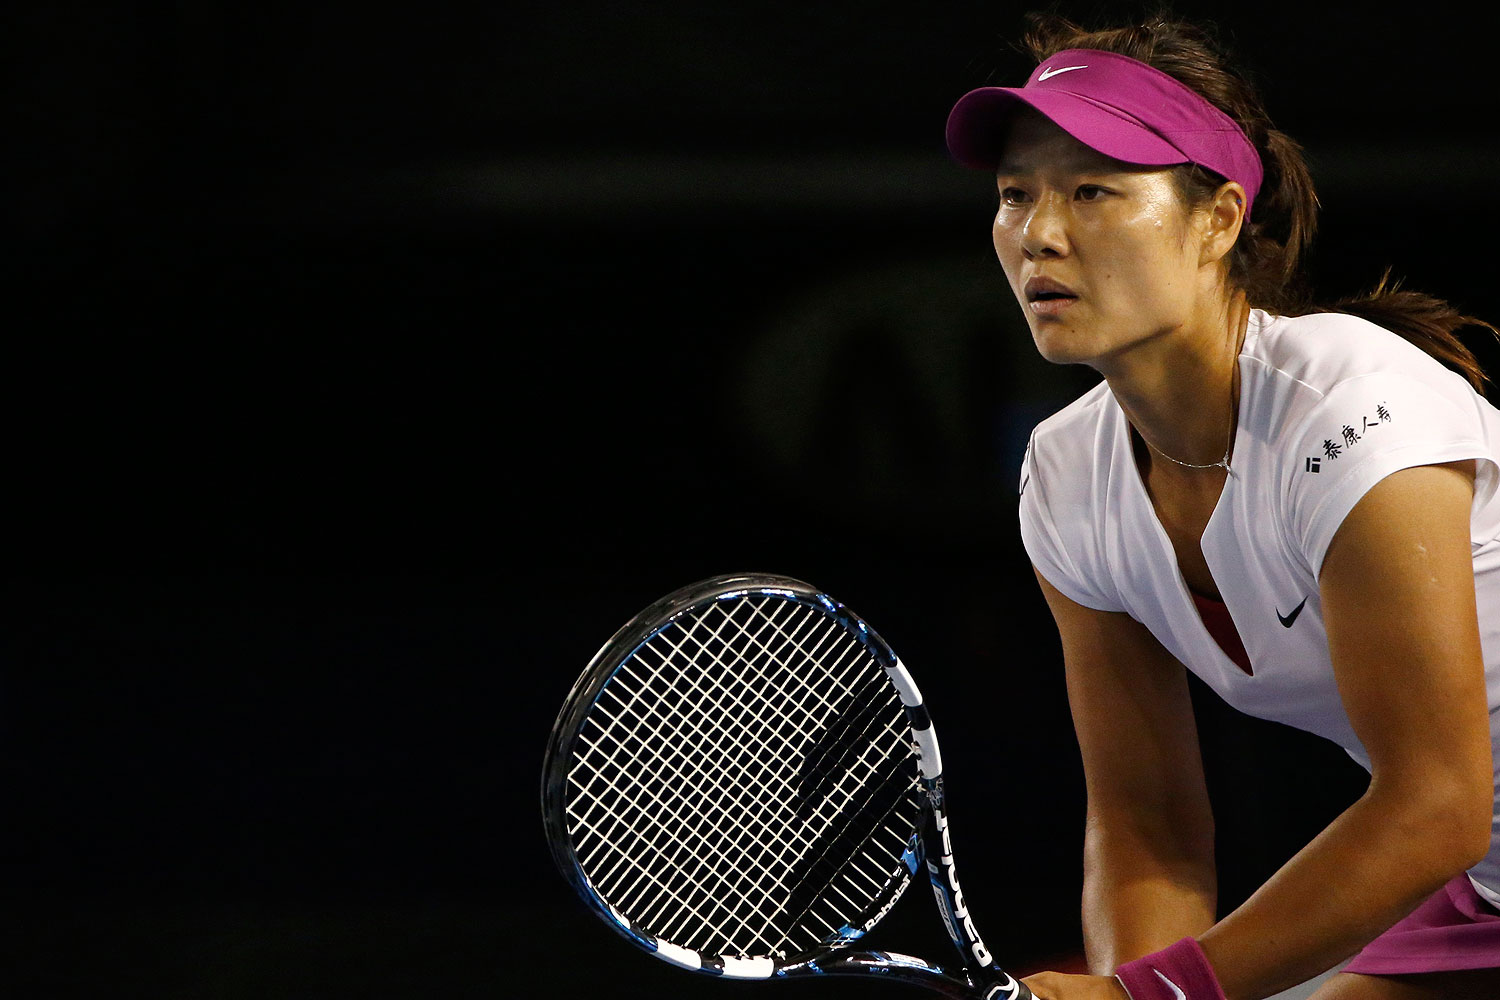 Li Na of China prepares to receive a serve from Dominika Cibulkova of Slovakia during their women's singles final match at the Australian Open 2014 tennis tournament in Melbourne Jan. 25, 2014